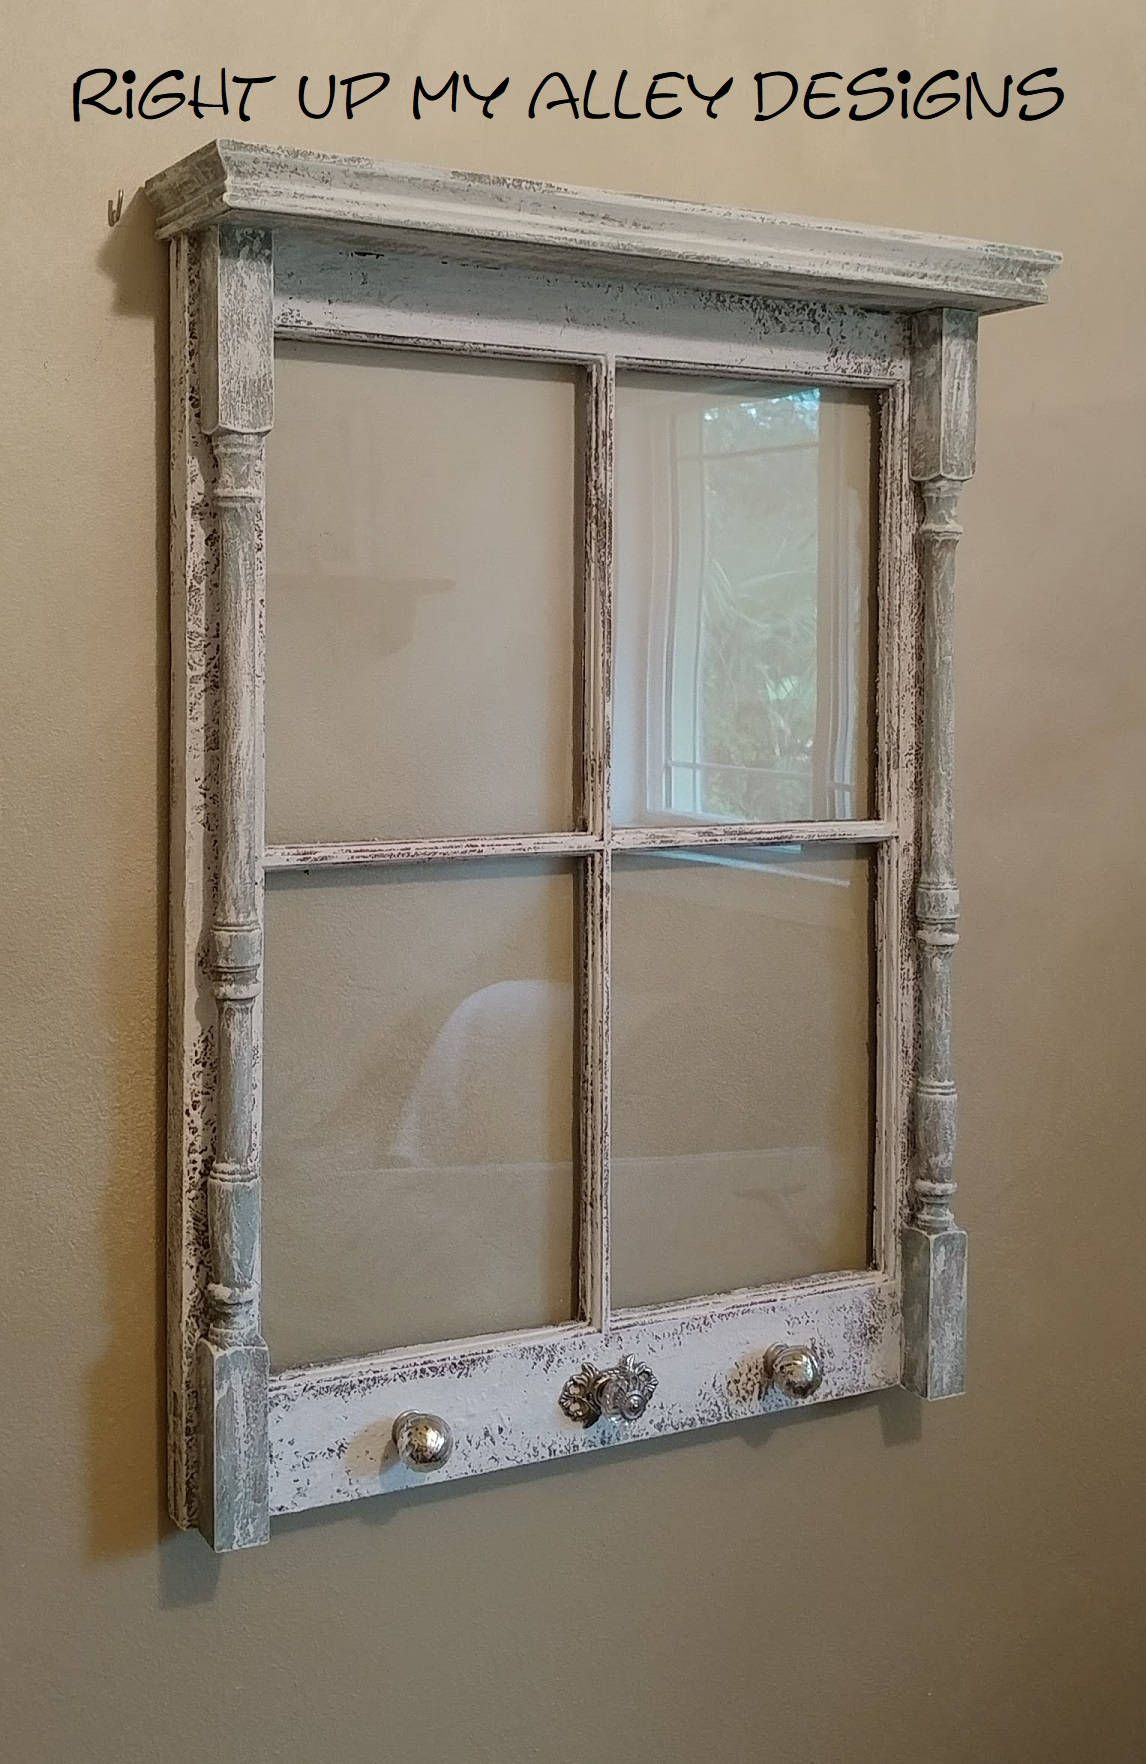 Old Window With Shelf Window Ideas Small 4 Pane Window With Shelf Distressed Window Unique Window Window Decor Upcycled Window Repurposed Window Crafts Old Window Projects Window Decor